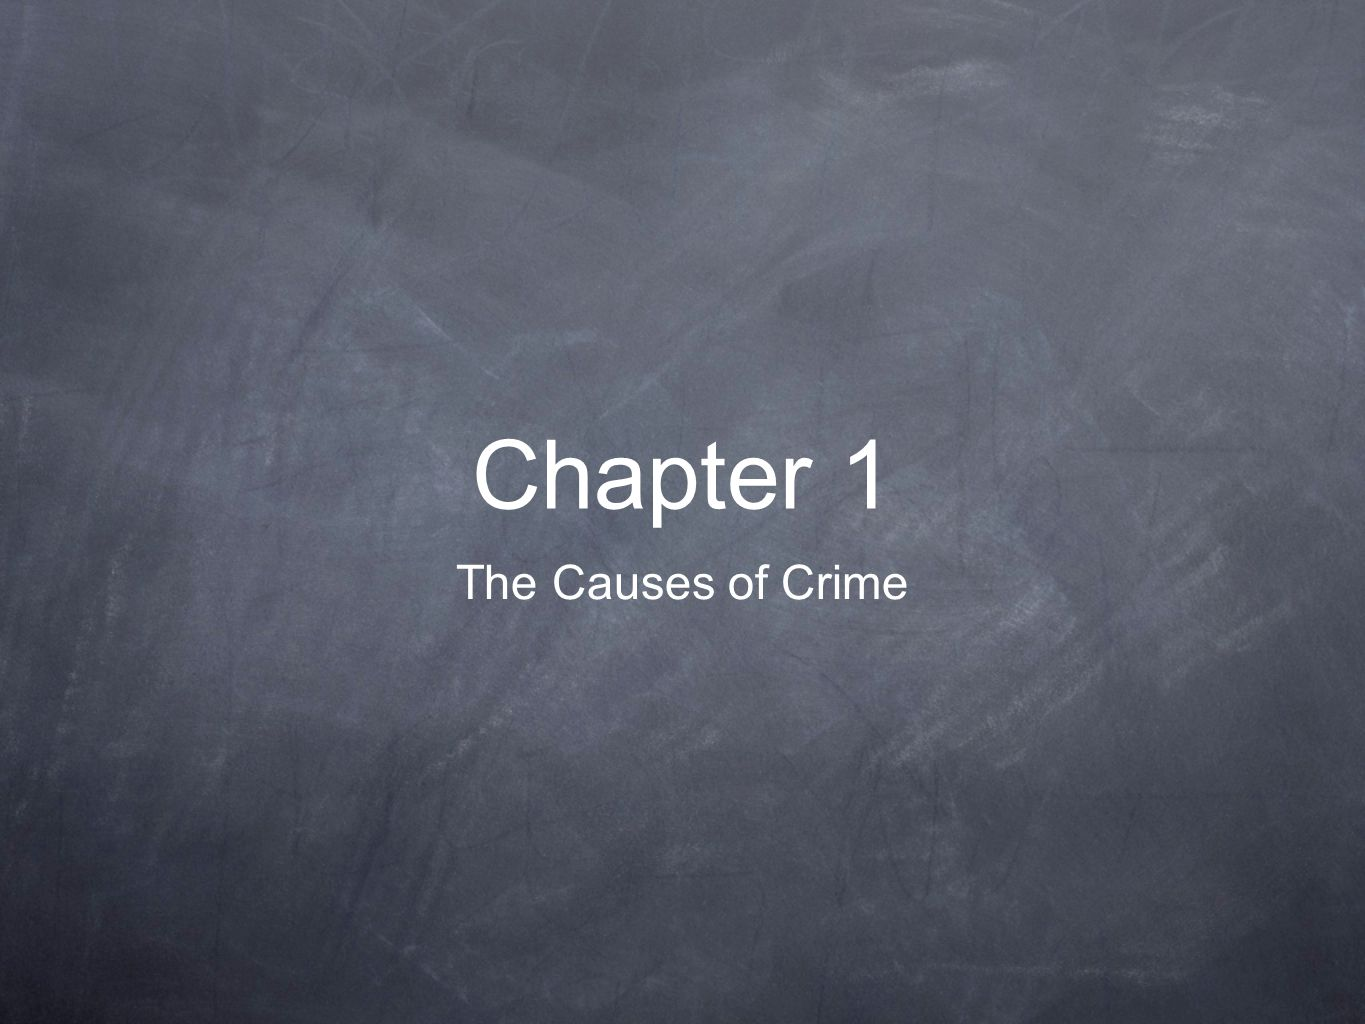 Chapter 1 The Causes of Crime